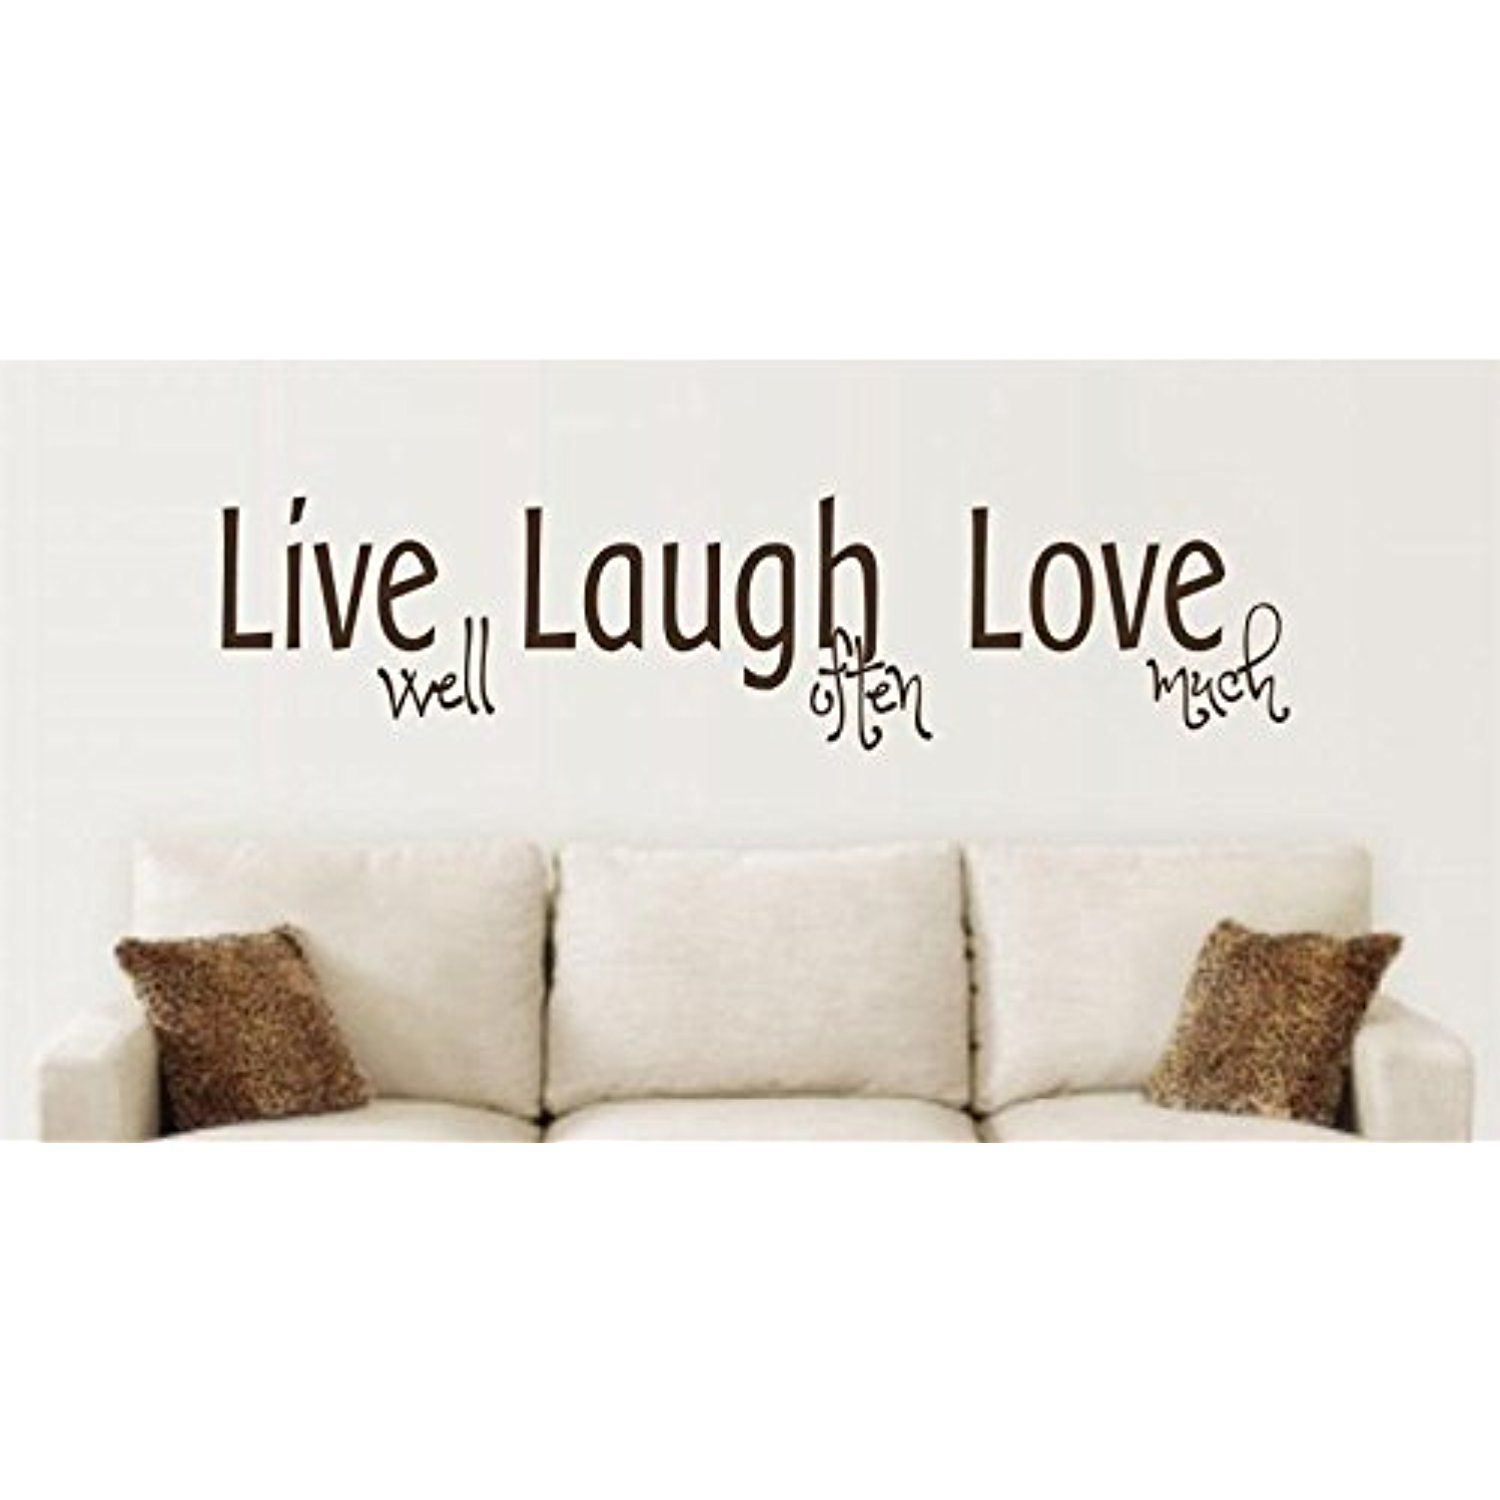 Enchantingly elegant live well laugh often love much vinyl wall